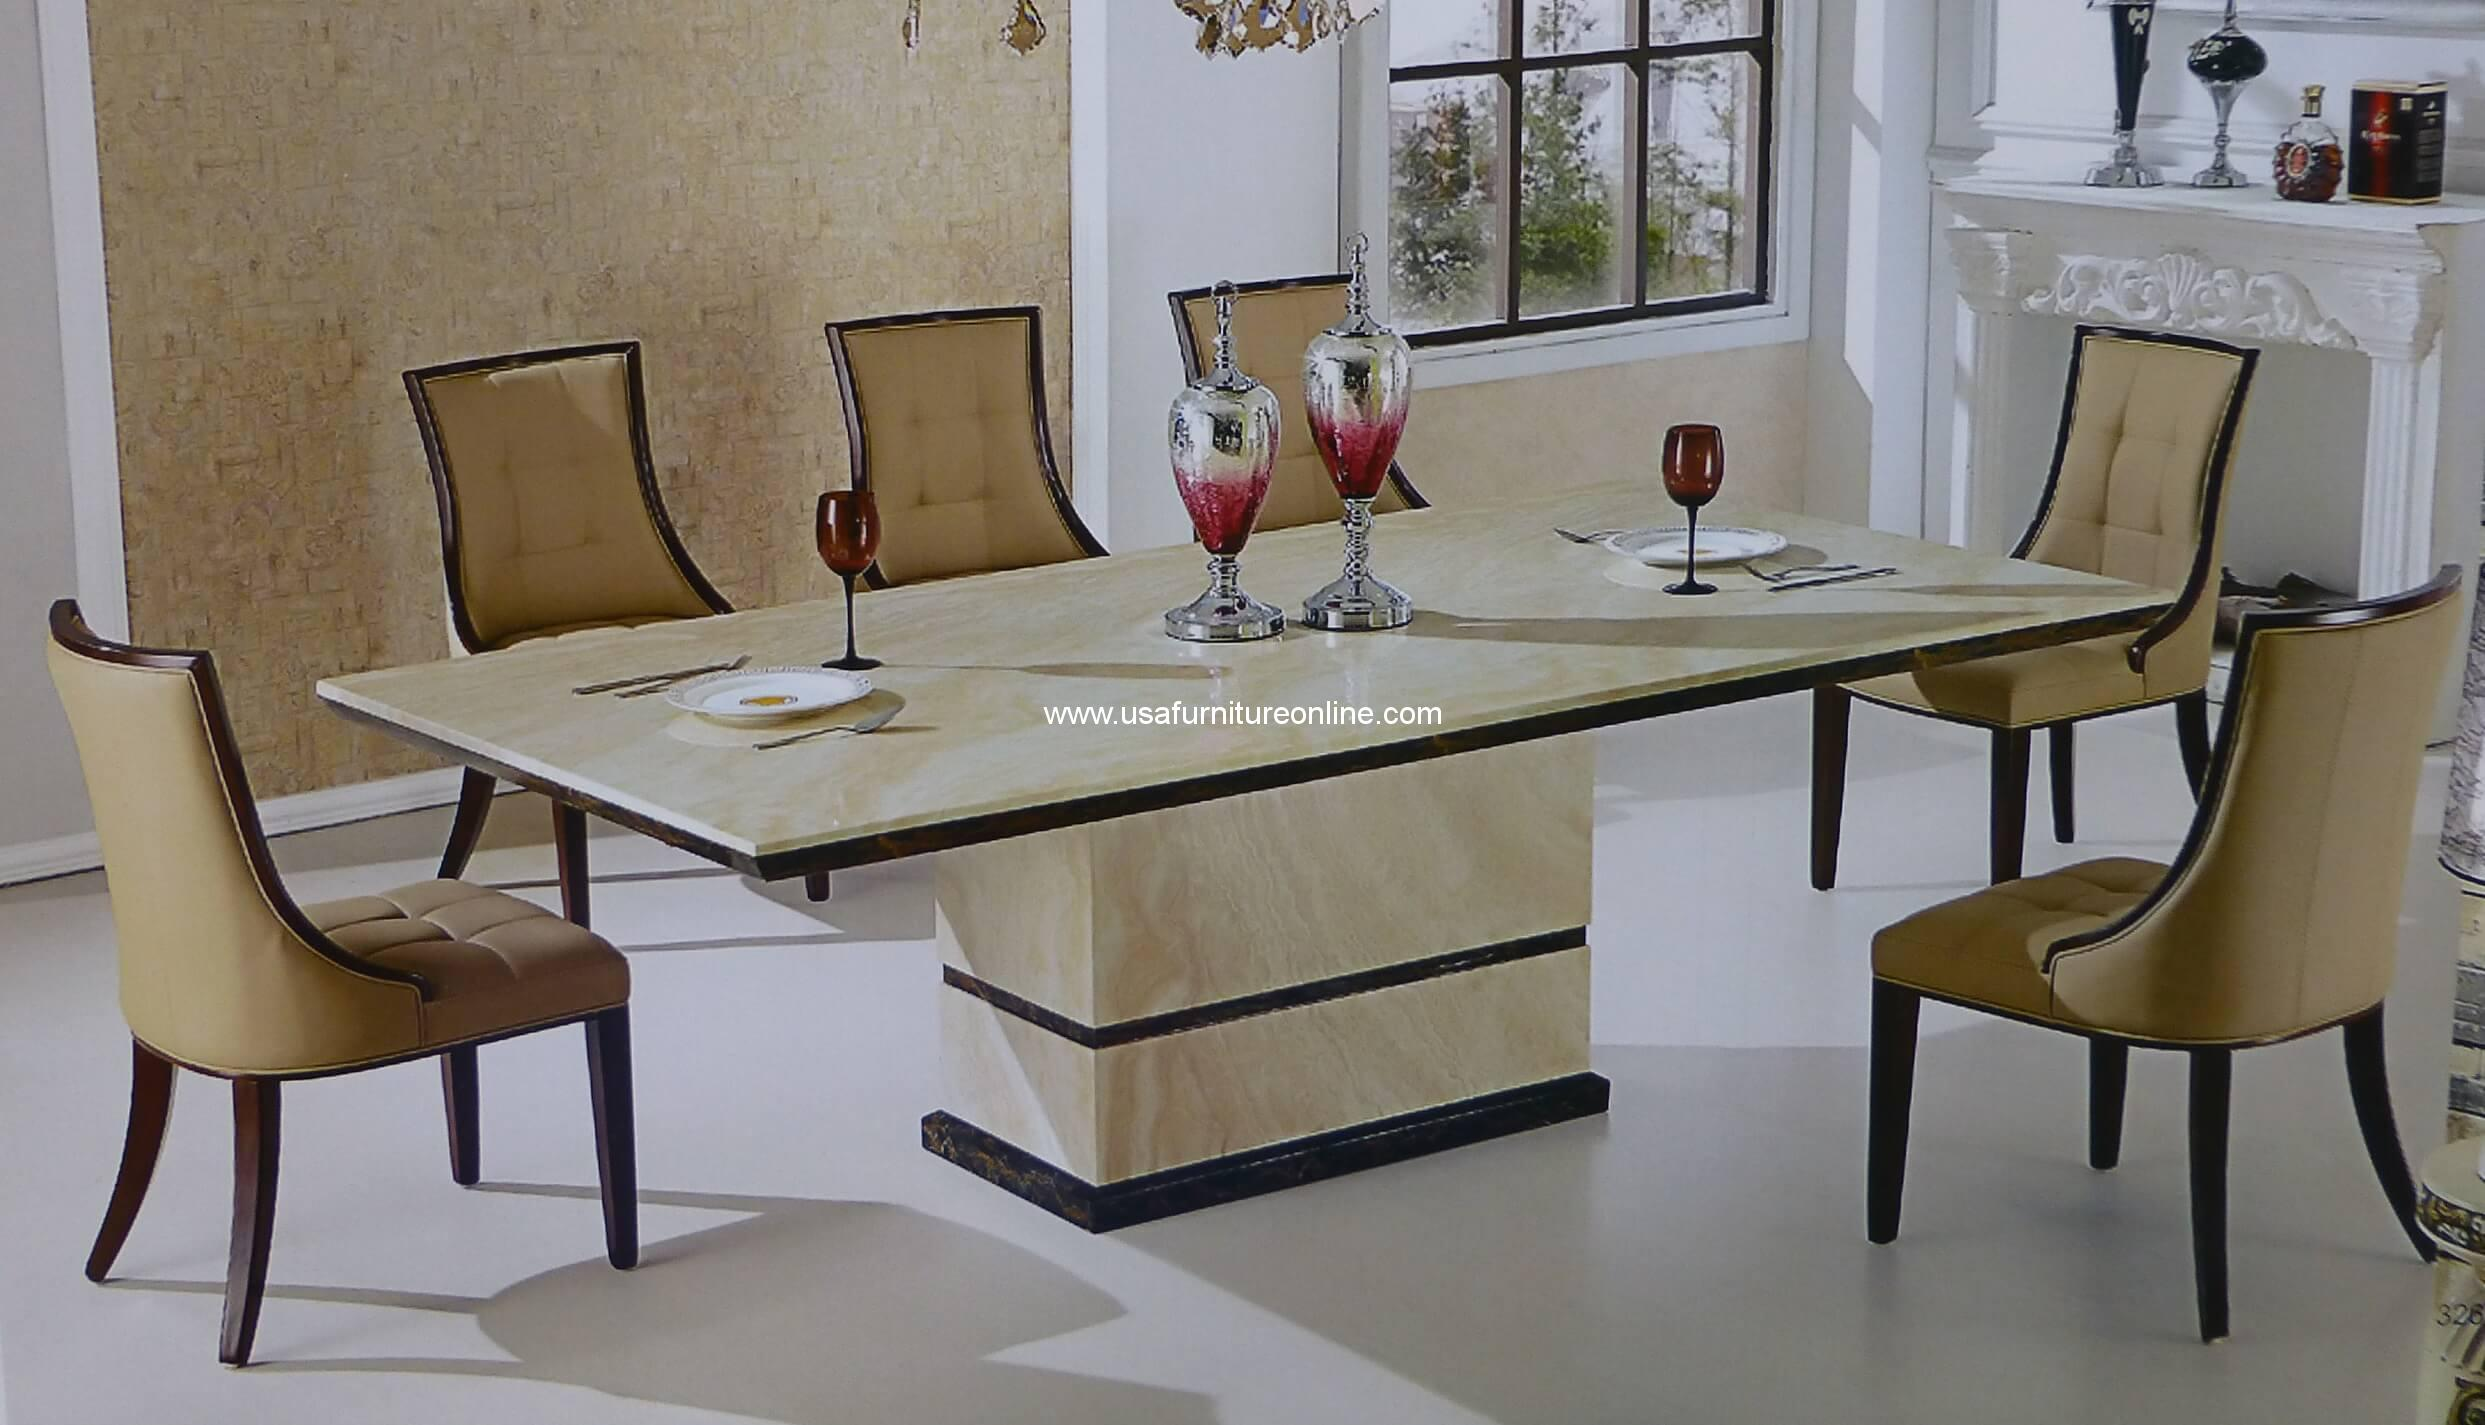 11 Piece Canberra Italian Marble Rectangular Dining Set Usa Furniture Online